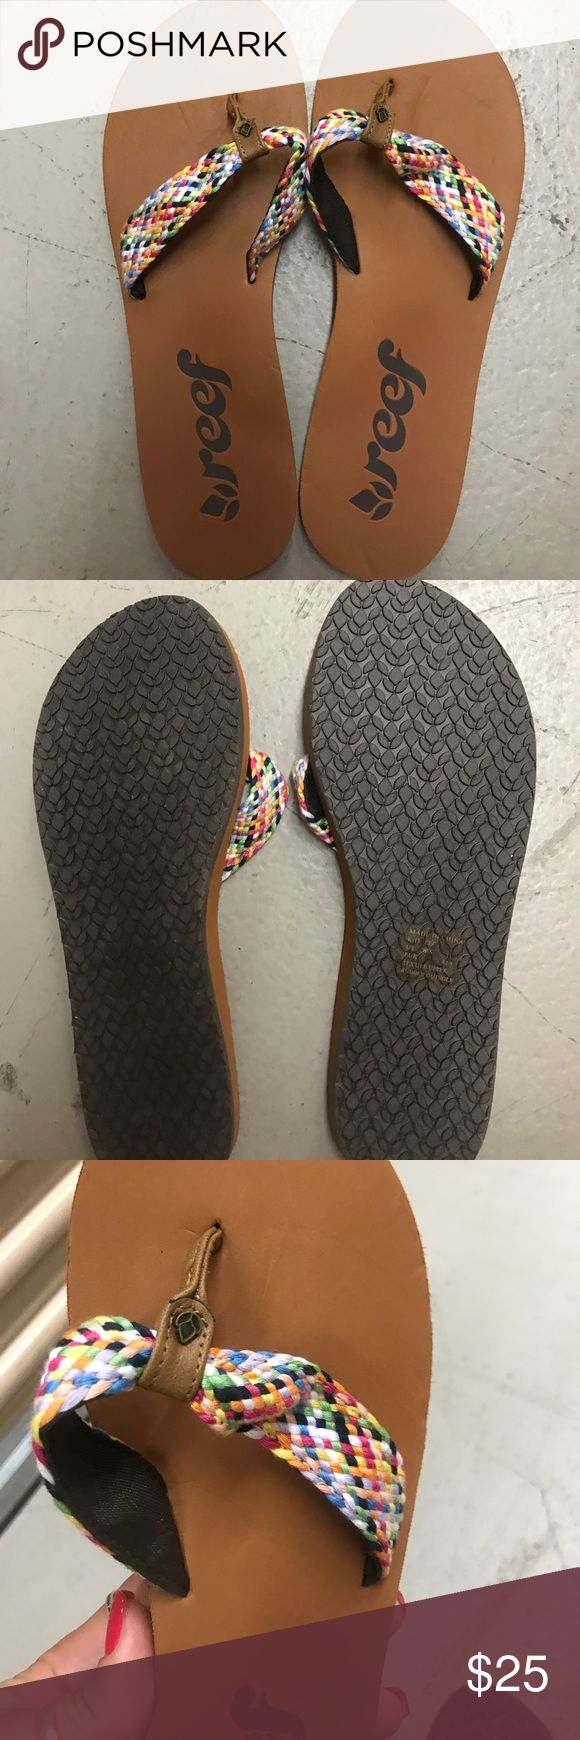 Brand new size 11 reef flip flops Rainbow colored reef flip flops brand new Reef Shoes Sandals